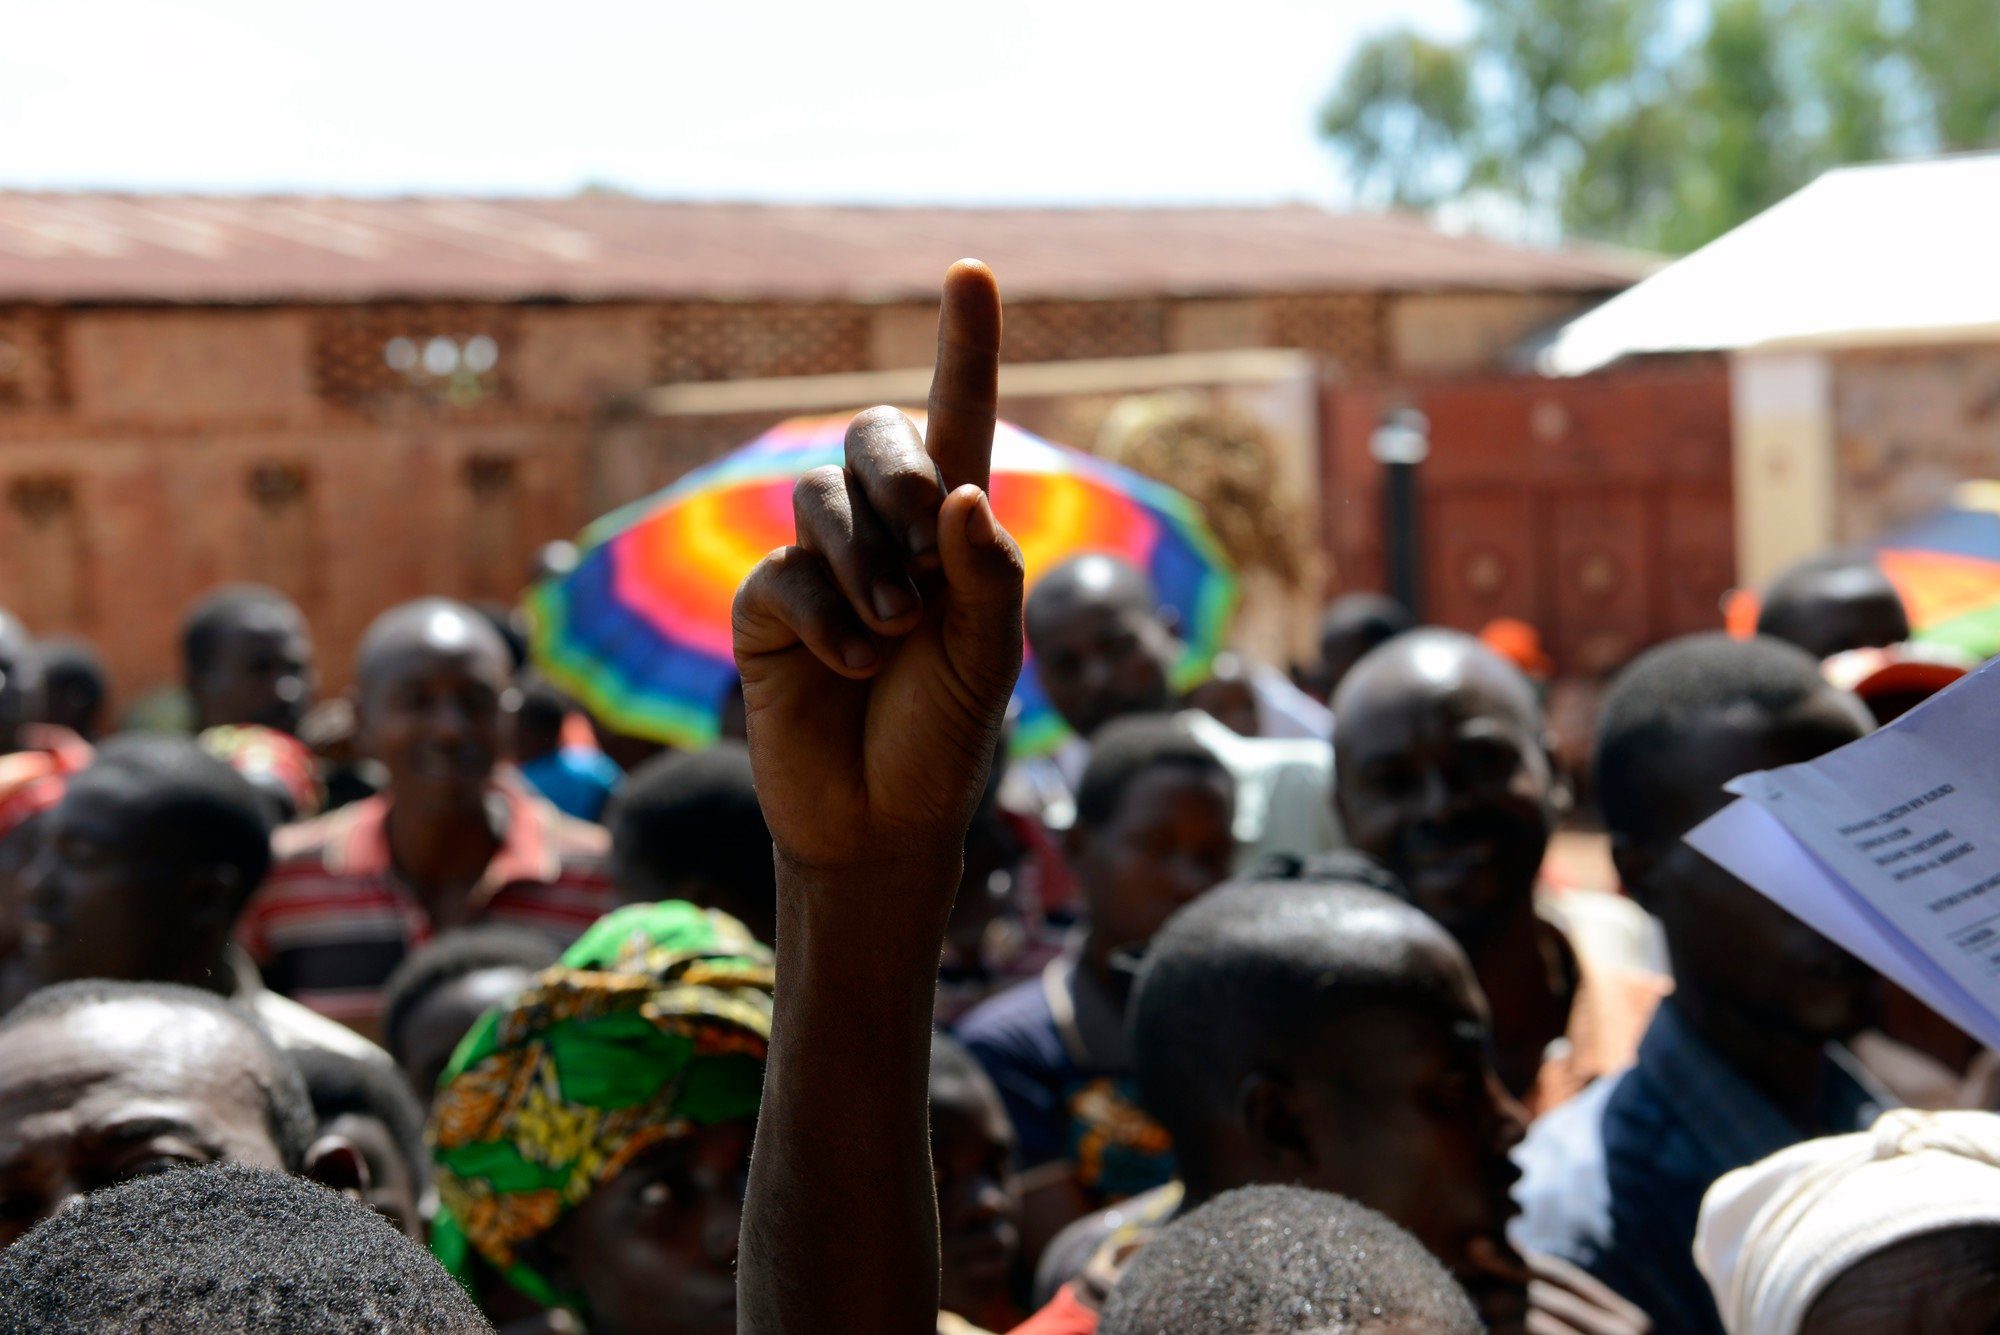 Jean-Marie Mbonimpa (30) has just received news at a public meeting held outside Muhuzu primary school in Busoni that he has been selected to take part in a new phase of Concern's graduation programme. Photo: Chris de Bode/Panos Pictures for Concern Worldwide